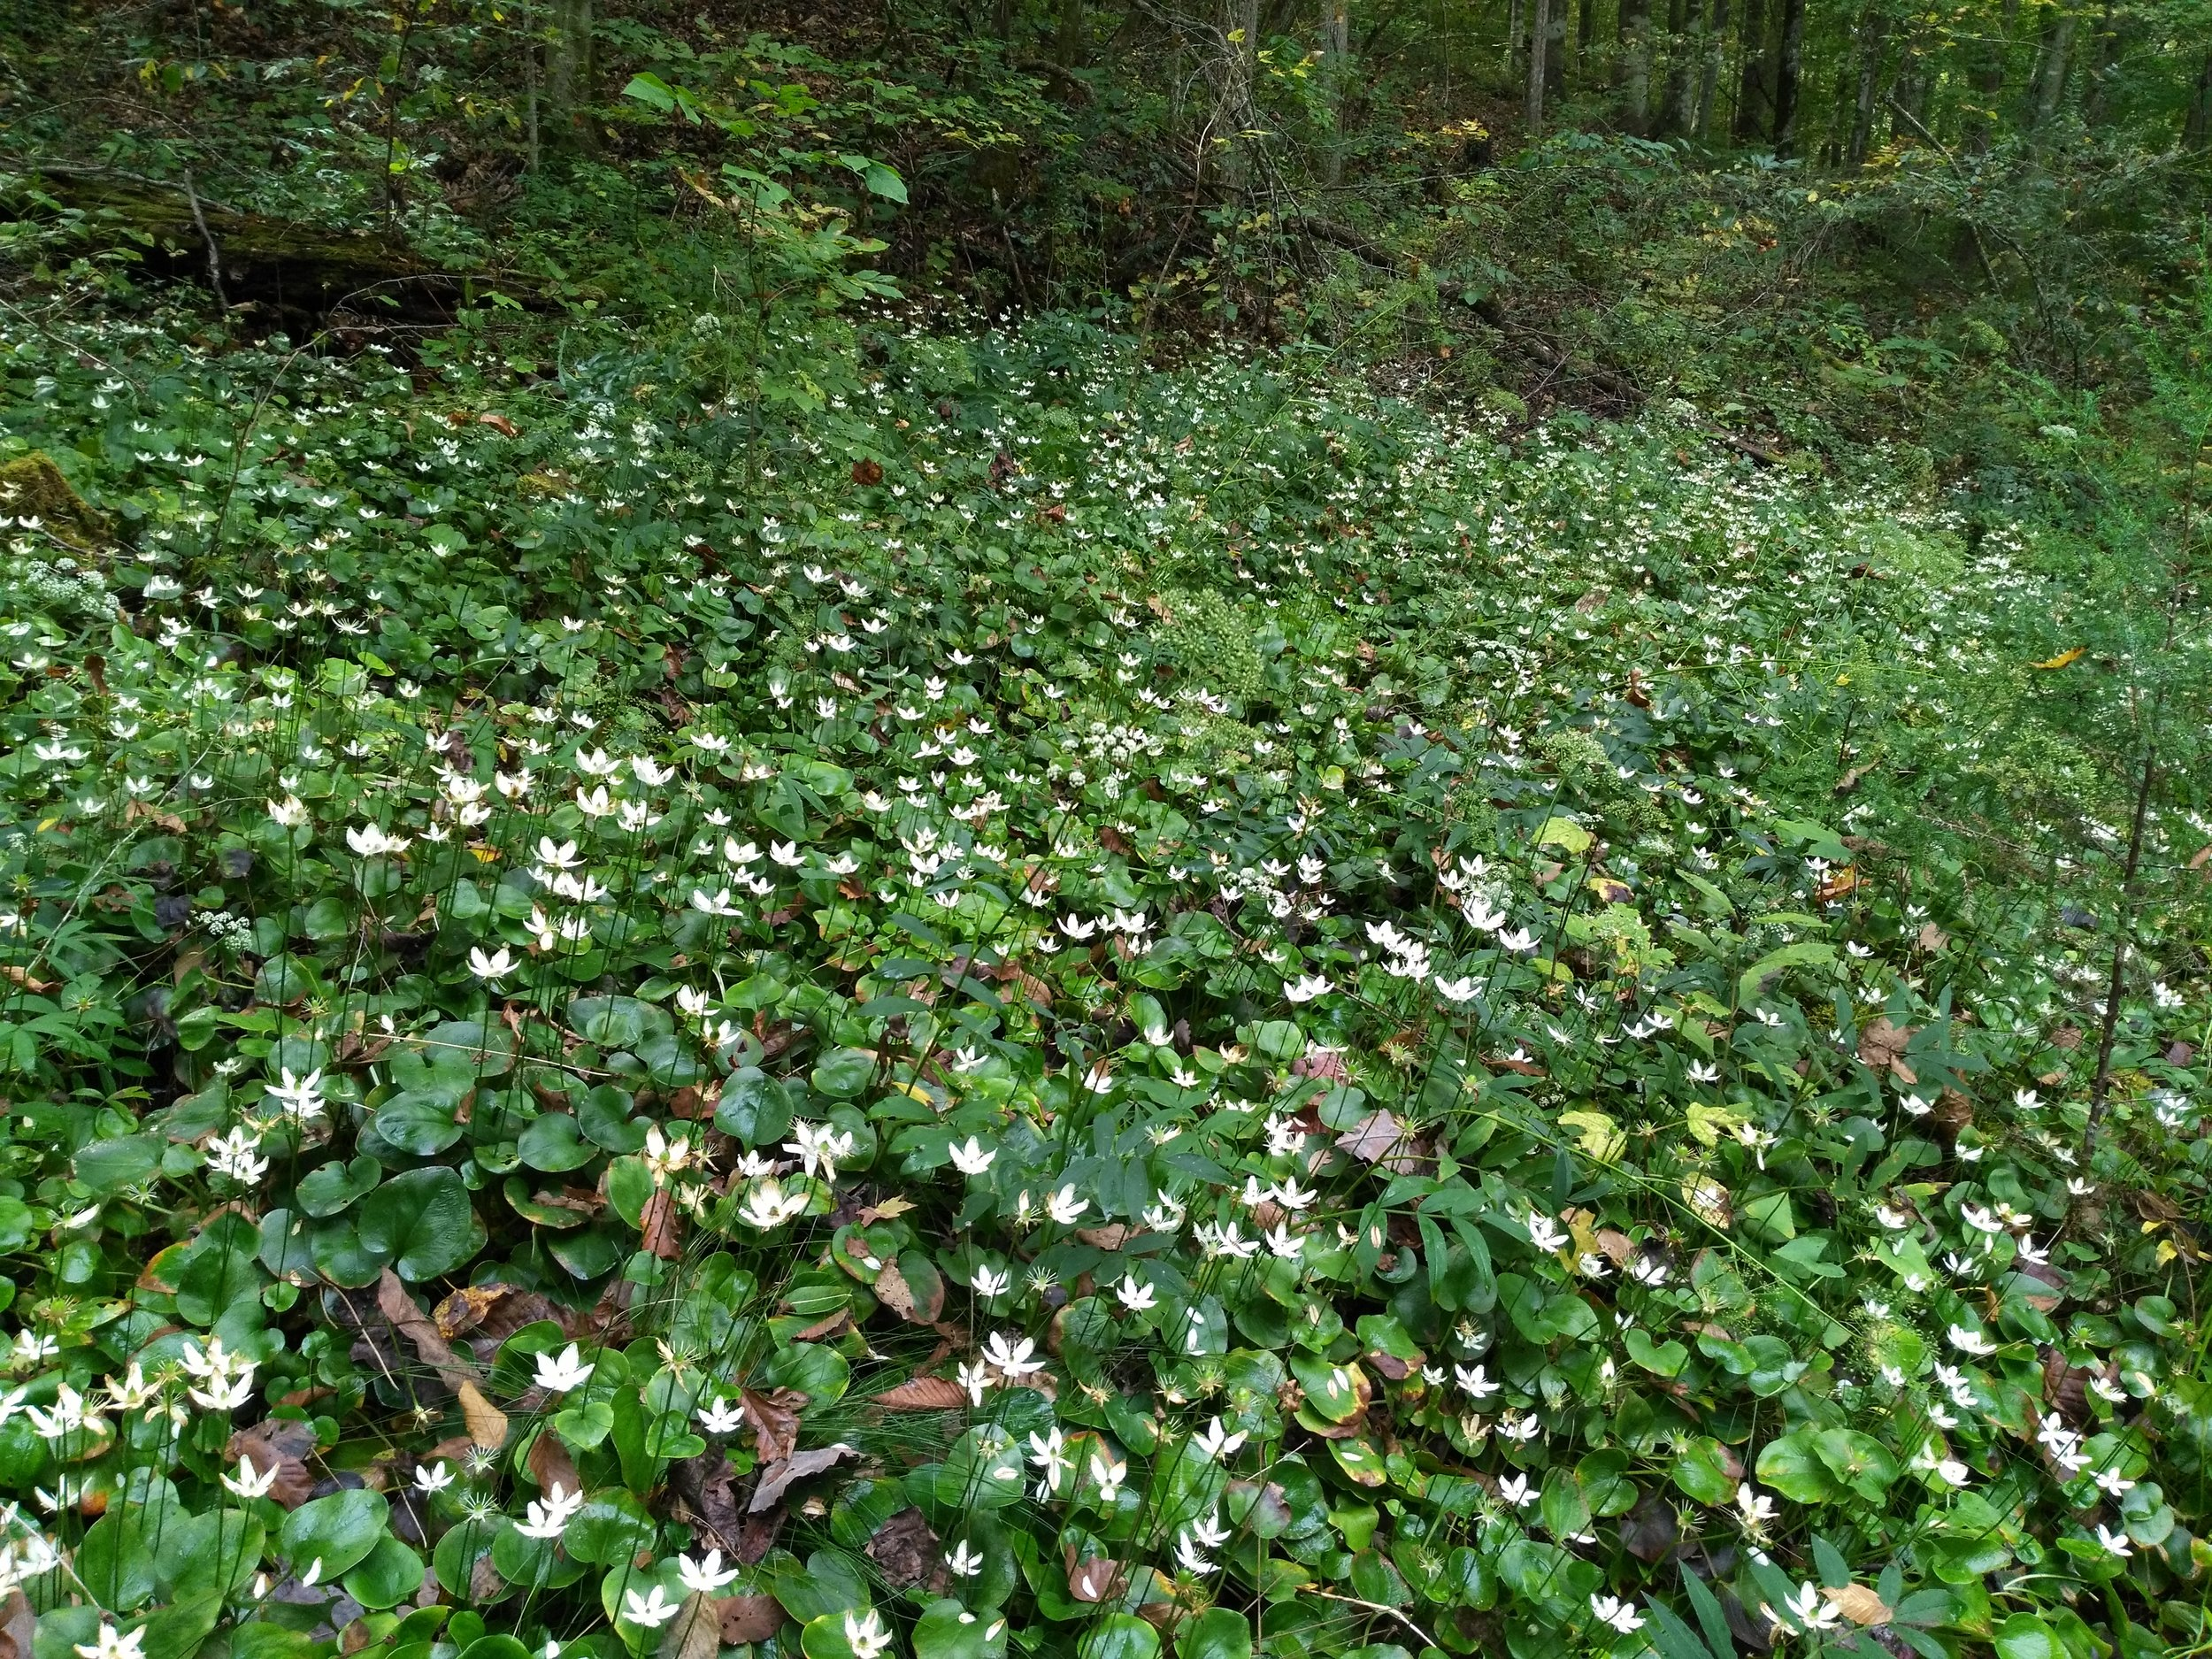 Large-leaved Grass of Parnassus (Parnassia grandifolia) dominates some dolomite seeps. This is one of several rare species tracked by the Tennessee Division of Natural Areas. Credit: Aaron Floden.